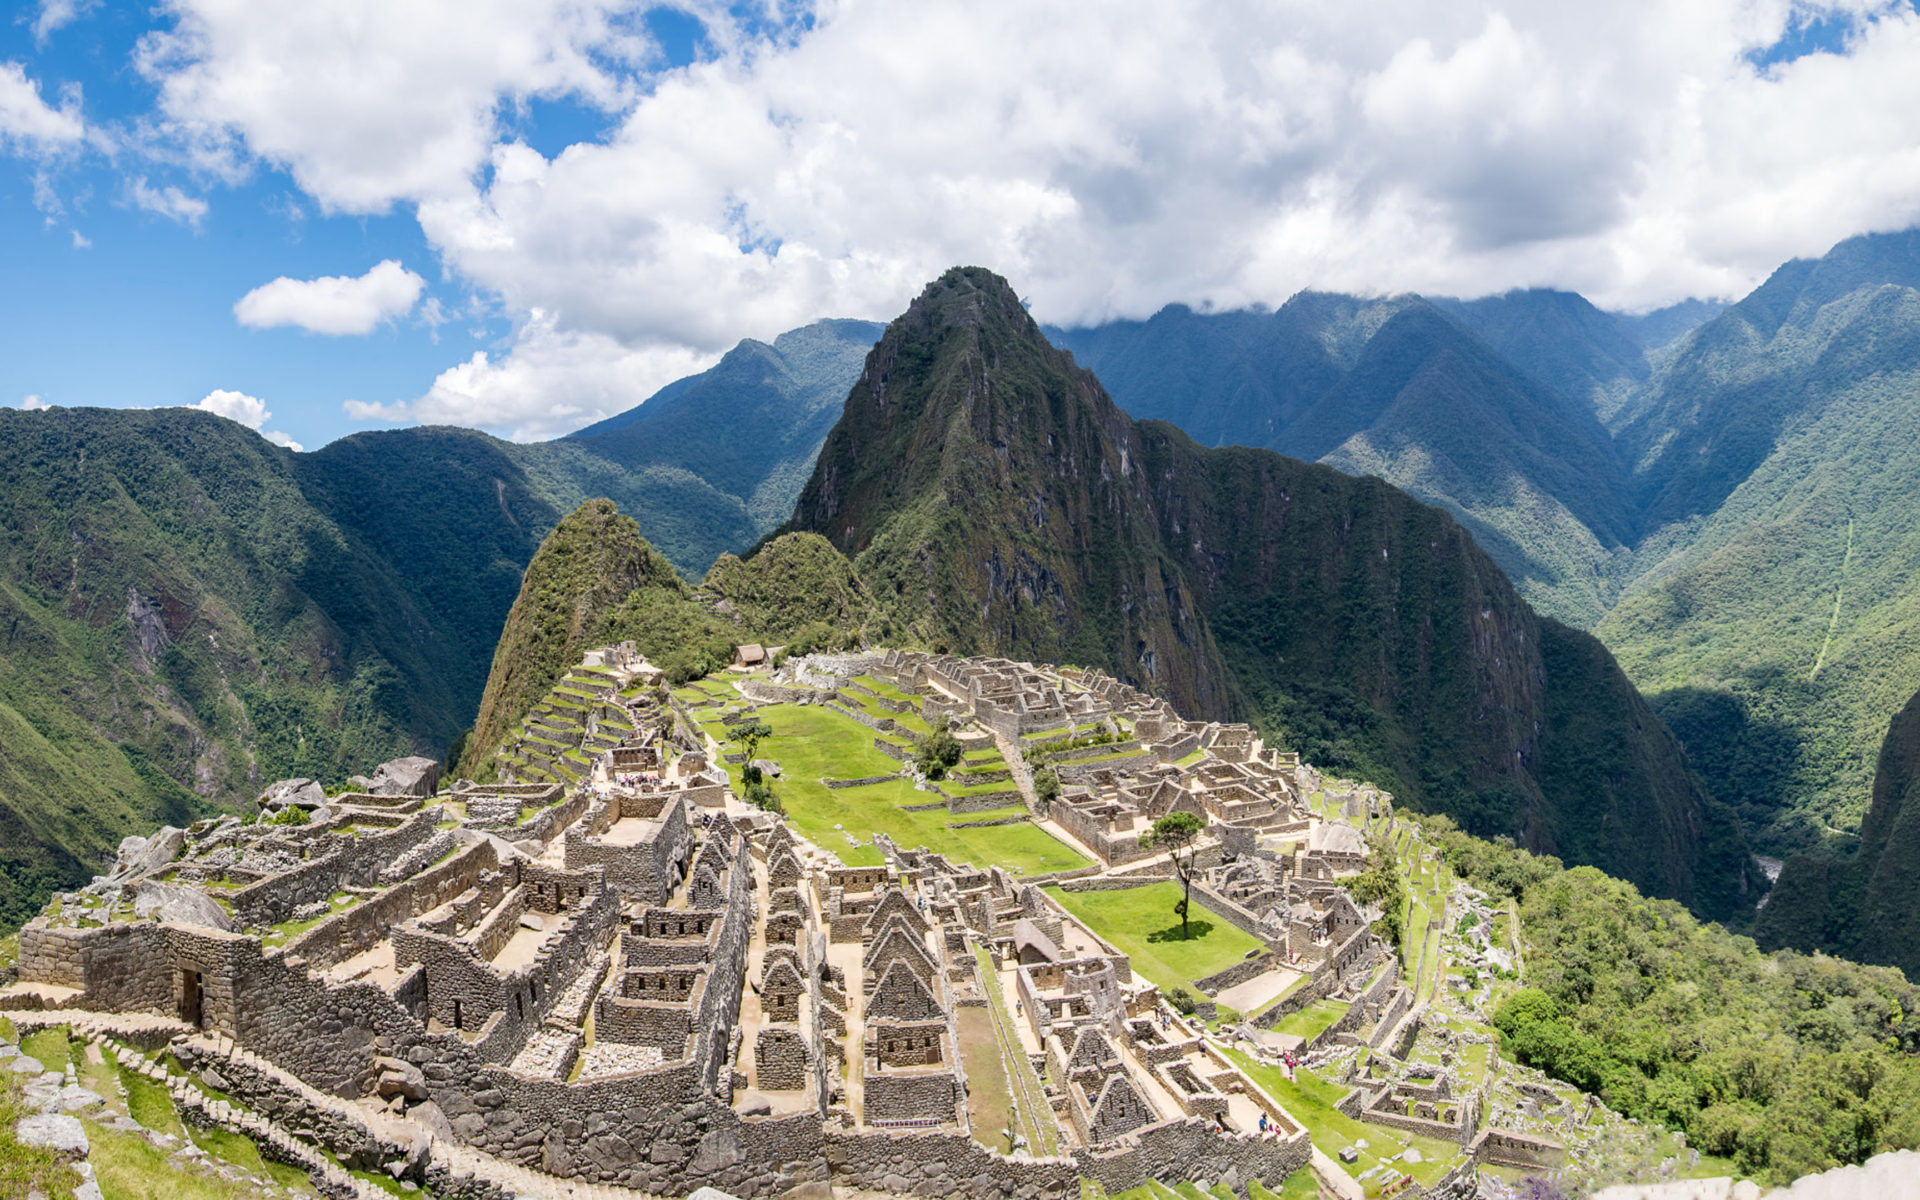 Machu Picchu Wallpaper Iphone Wonders Of The World Machu Picchu In The Andes Mountains